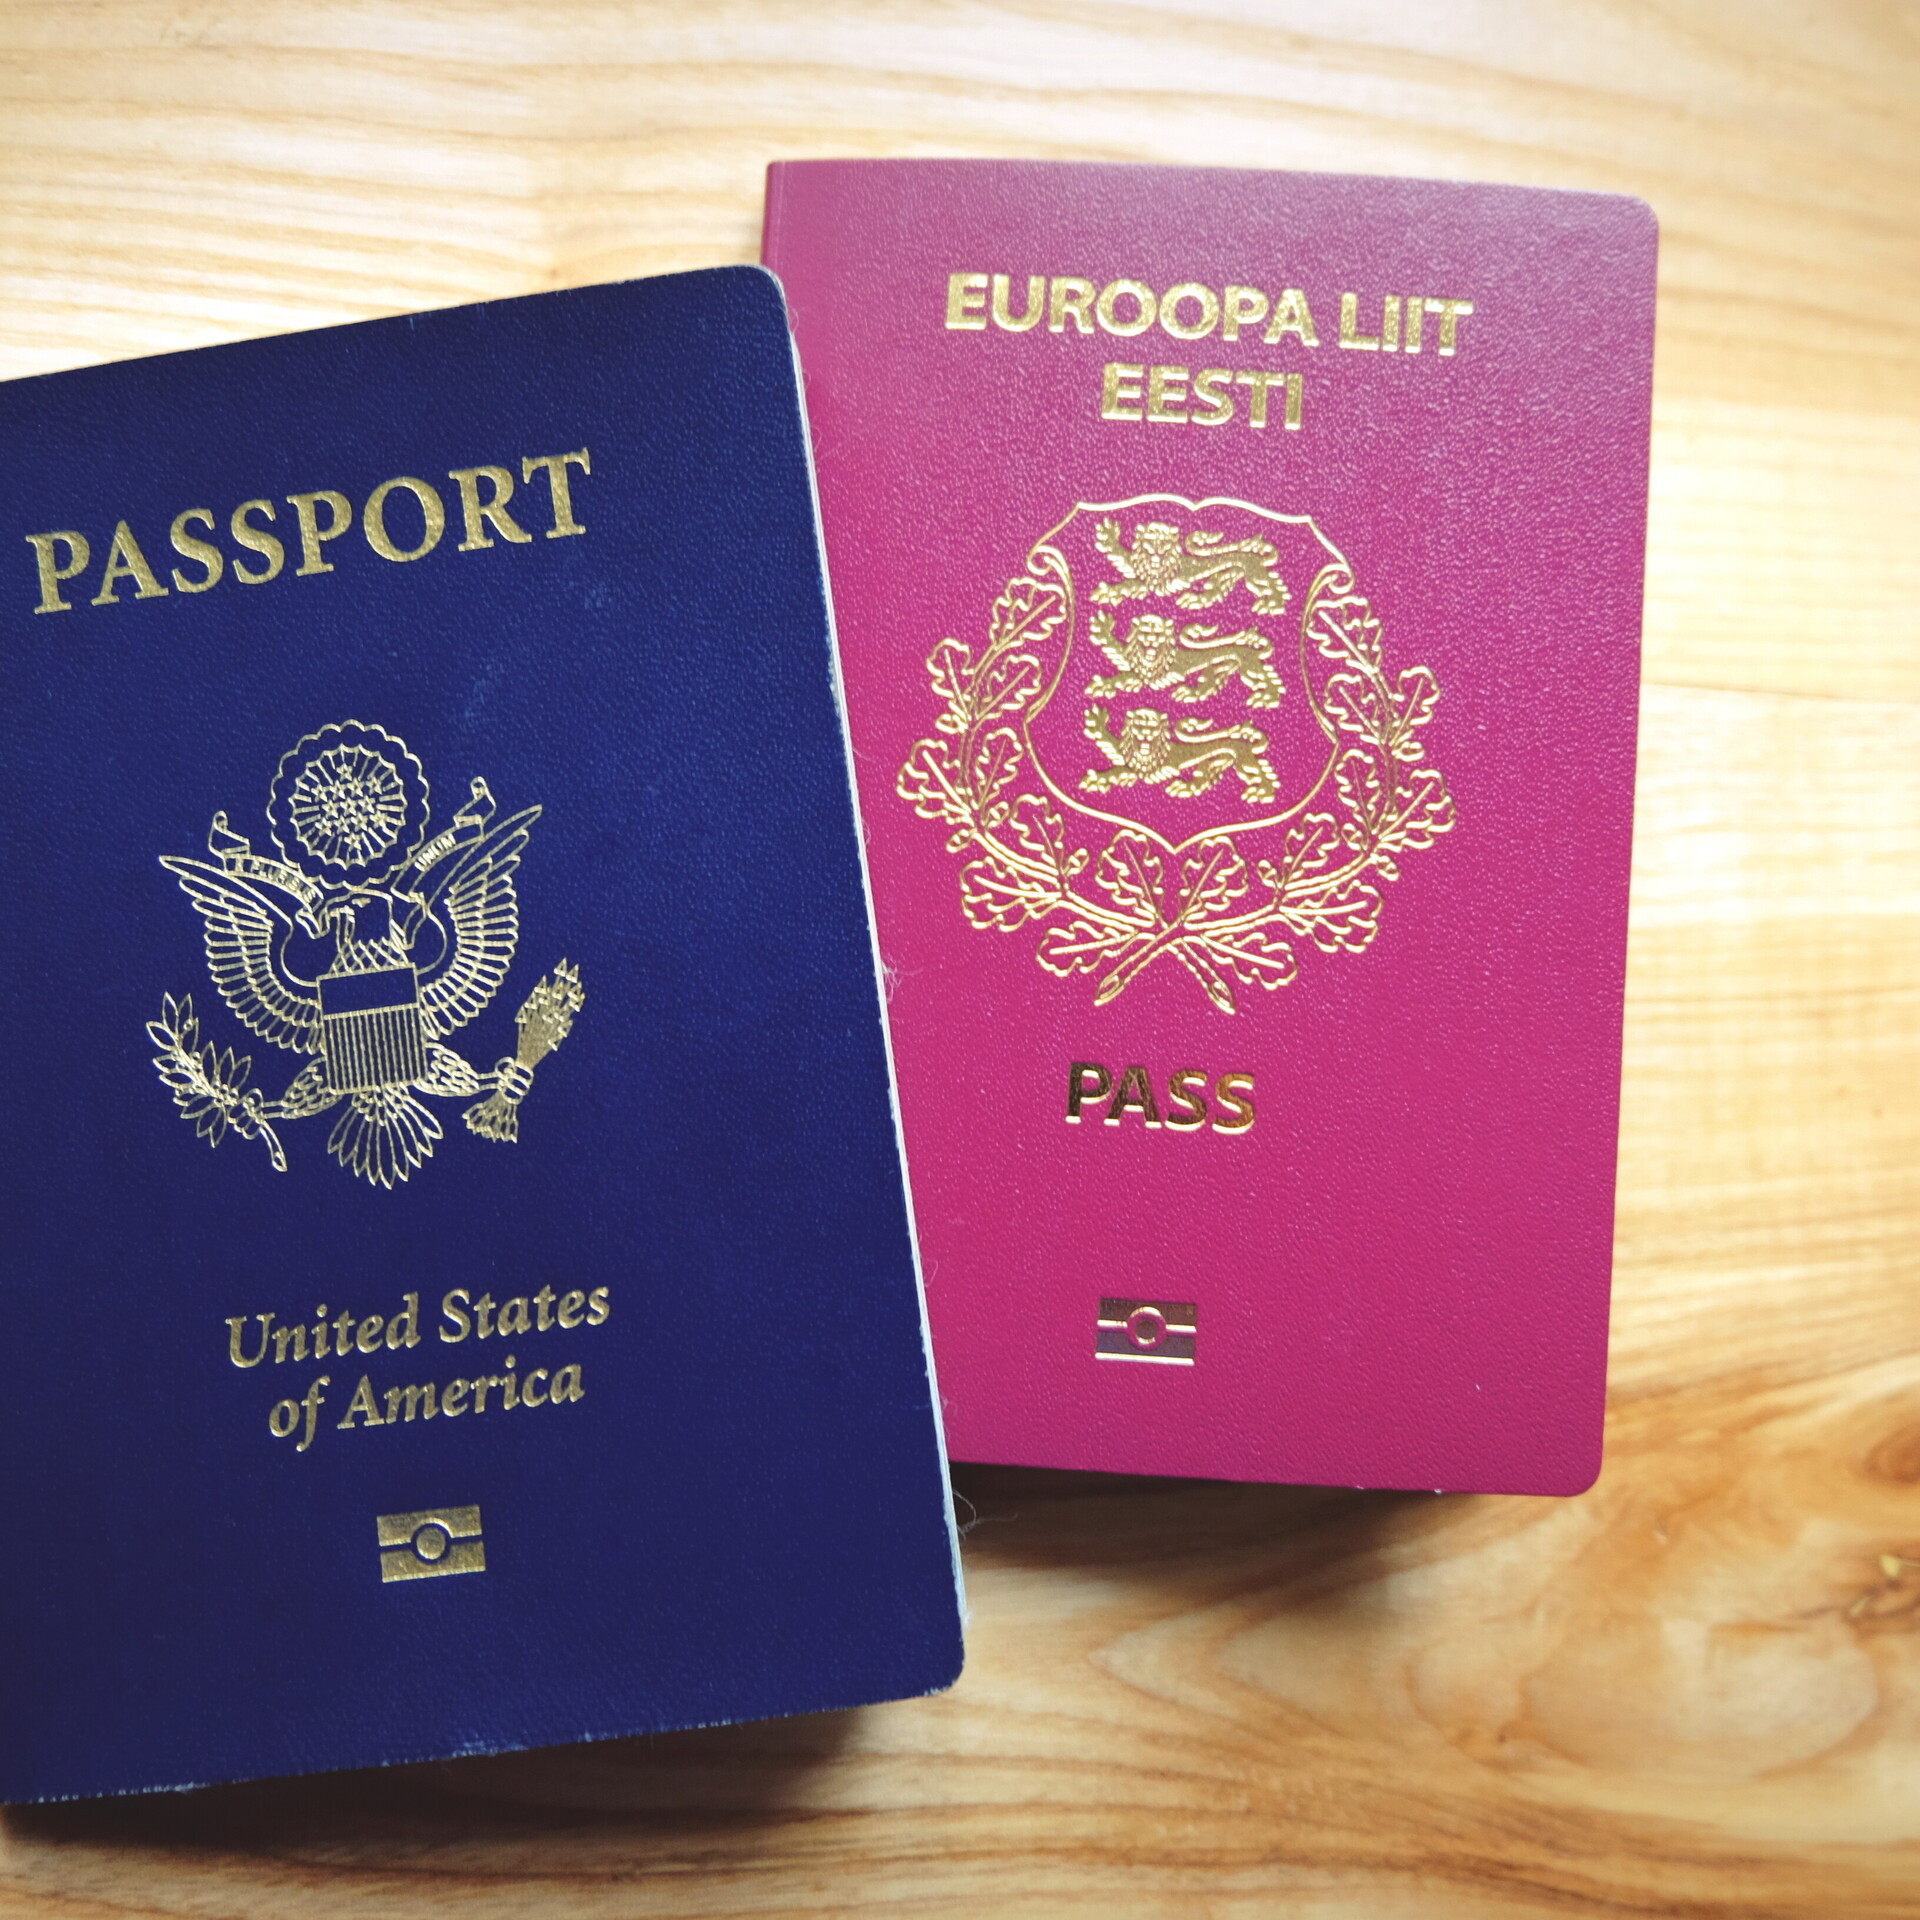 Dual citizenship - you can get, and then what 33